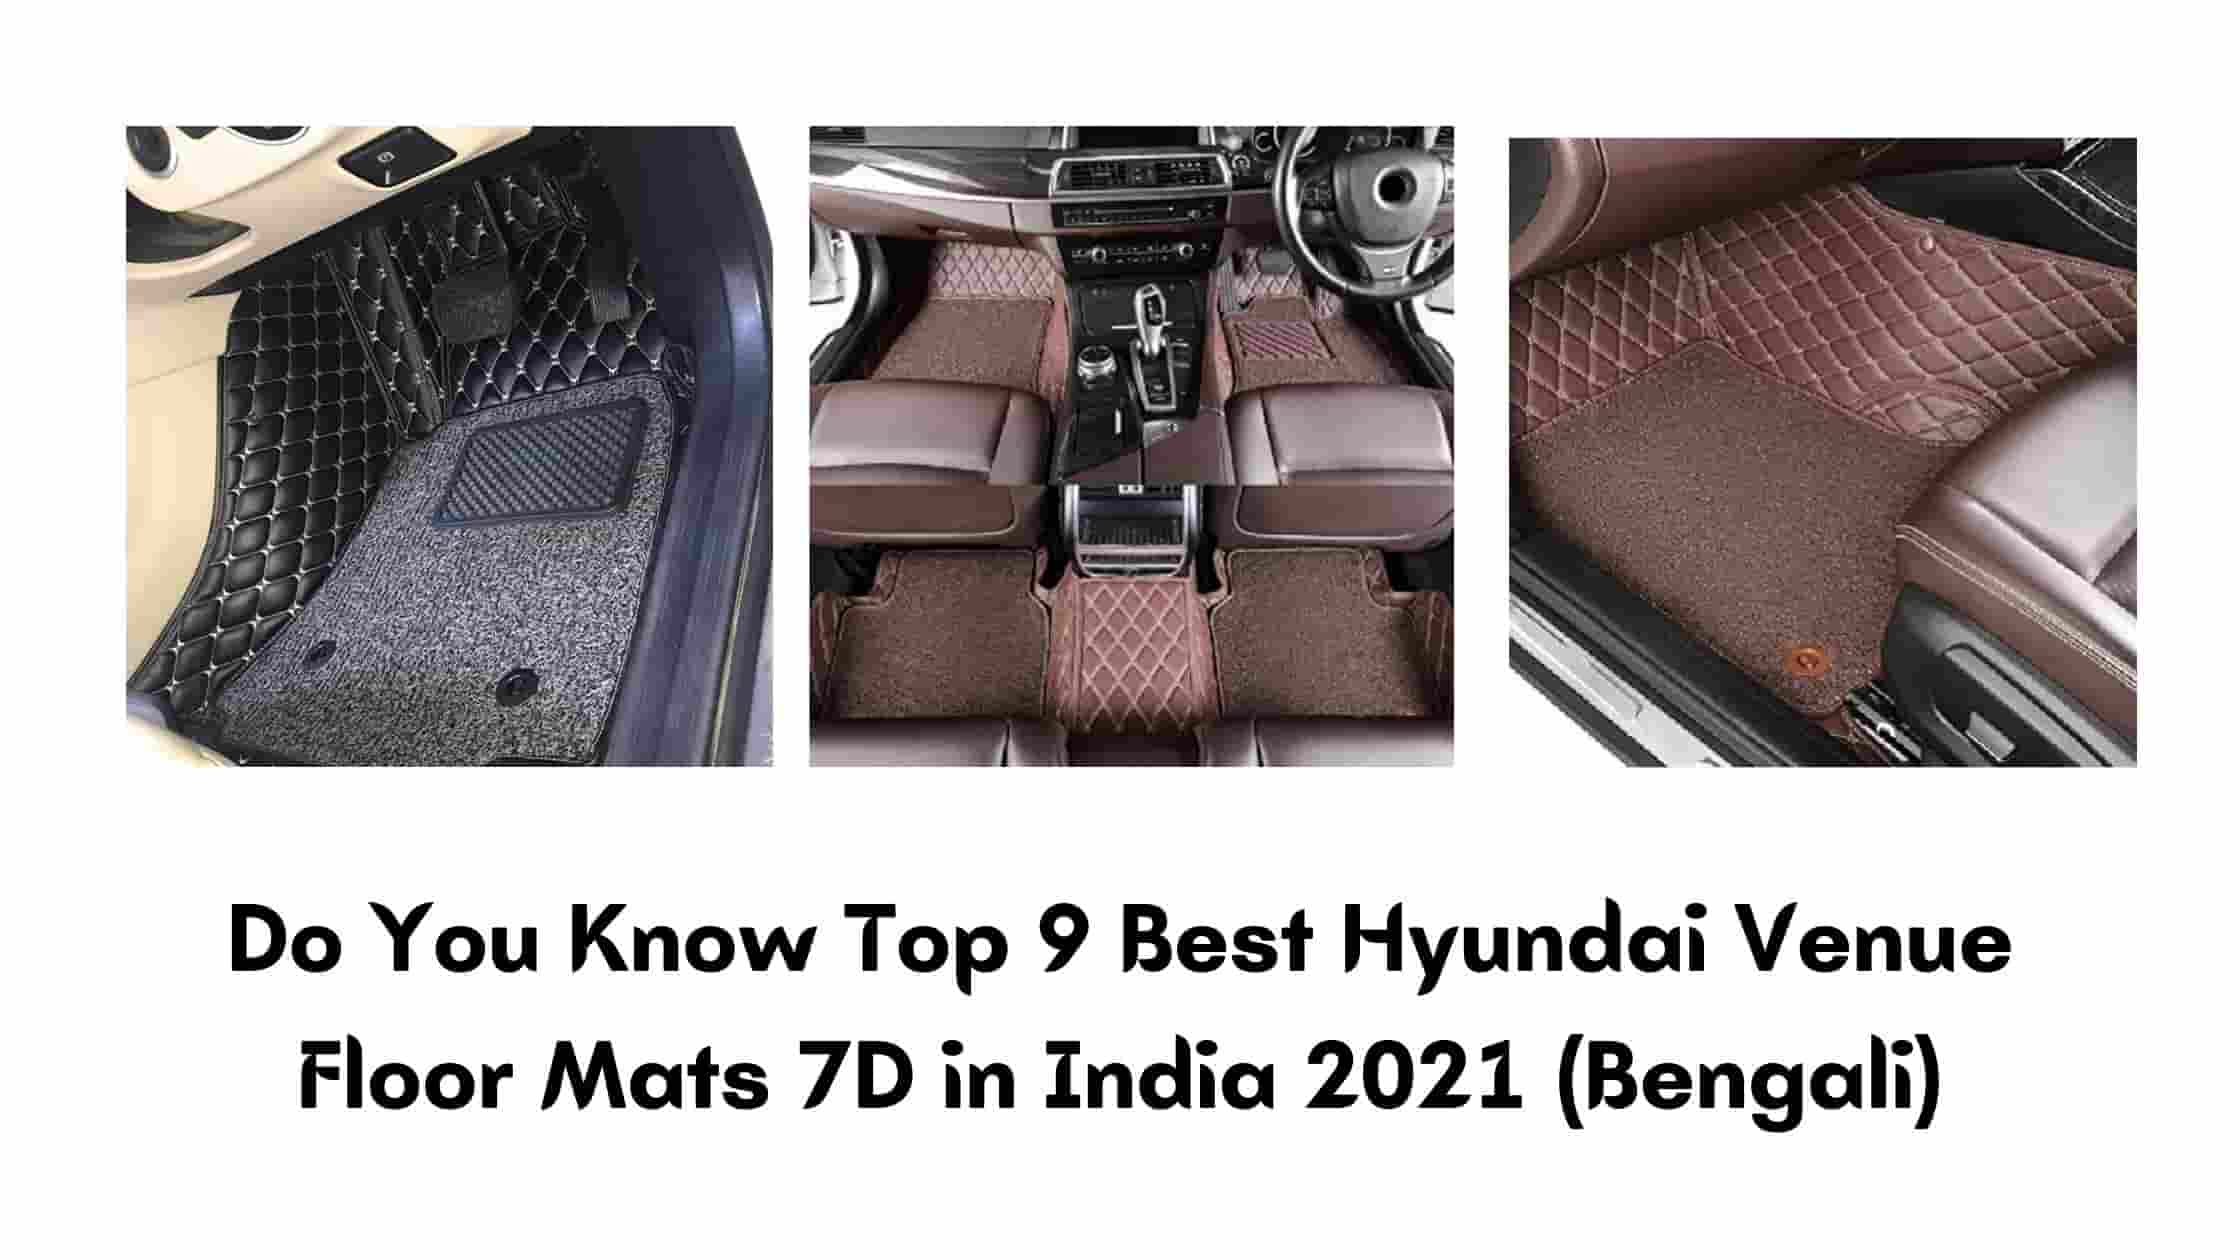 Do You Know Top 9 Best Hyundai Venue Floor Mats 7D in India 2021 (Bengali)